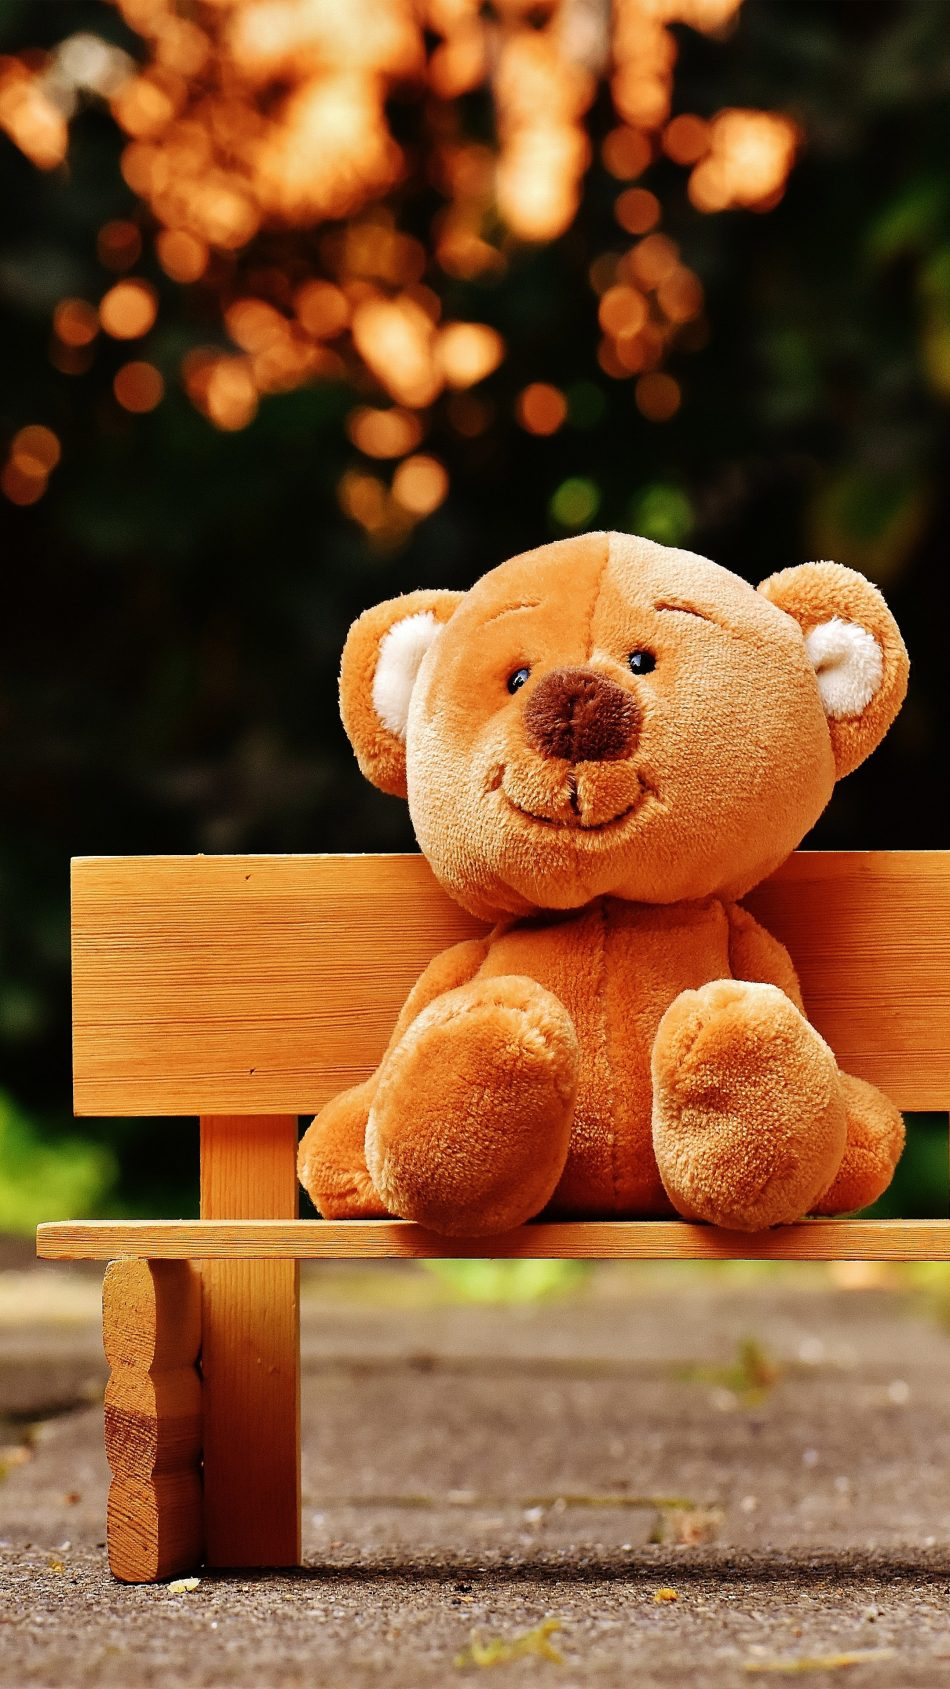 Cute Teddy Bear Park Bench 4K Ultra HD Mobile Wallpaper